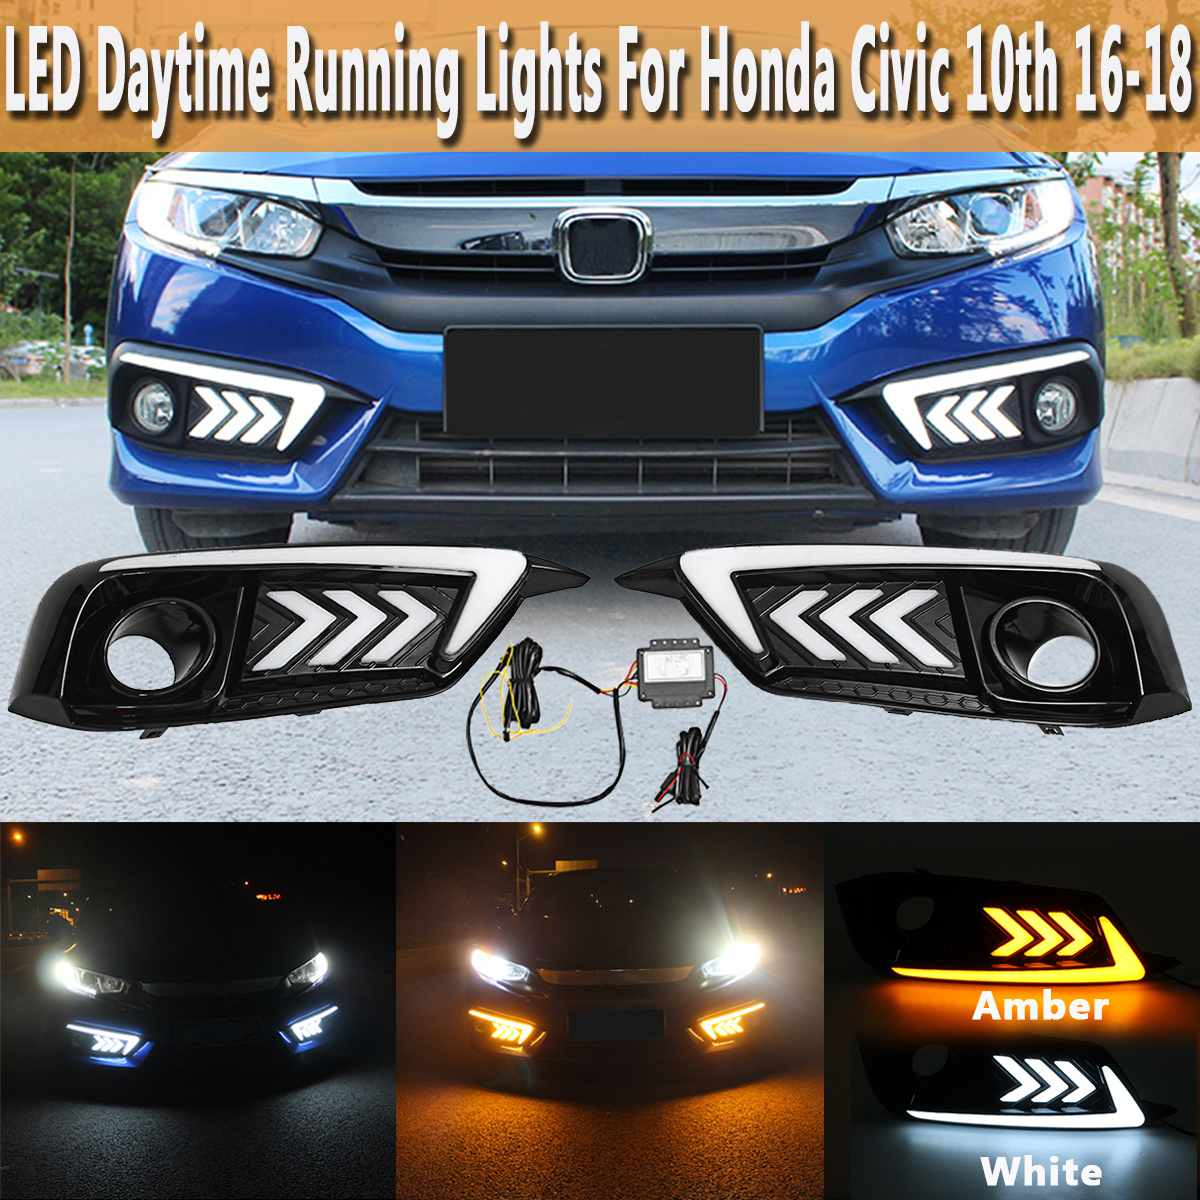 White and Amber Color LED DRL Daytime Running Lamps Turn Signal Fog Lights For Honda for Civic 10th 2016-2018White and Amber Color LED DRL Daytime Running Lamps Turn Signal Fog Lights For Honda for Civic 10th 2016-2018